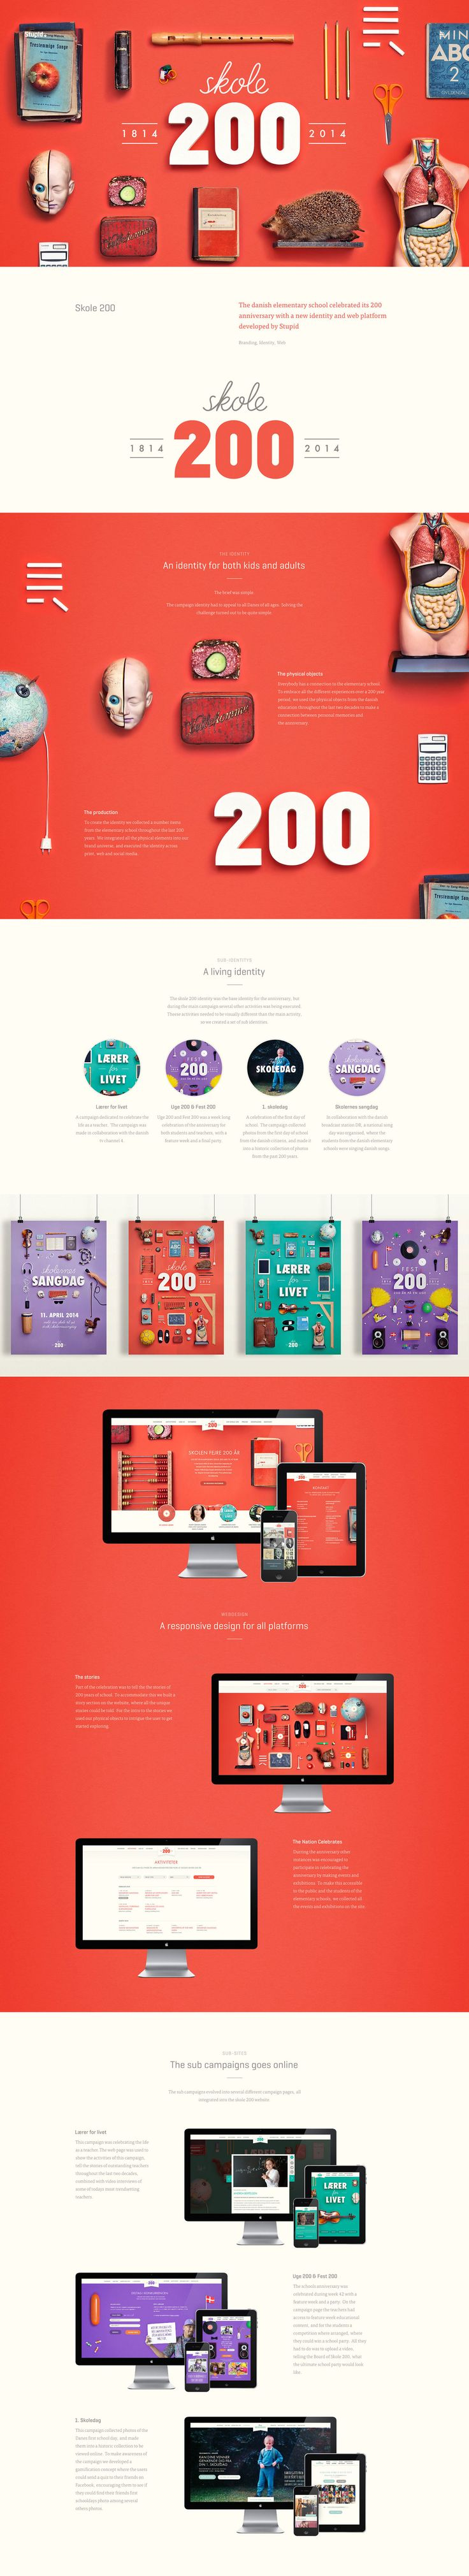 Skole. Celebrating two centuries of existence. Red colors and minimal Ui design concept.